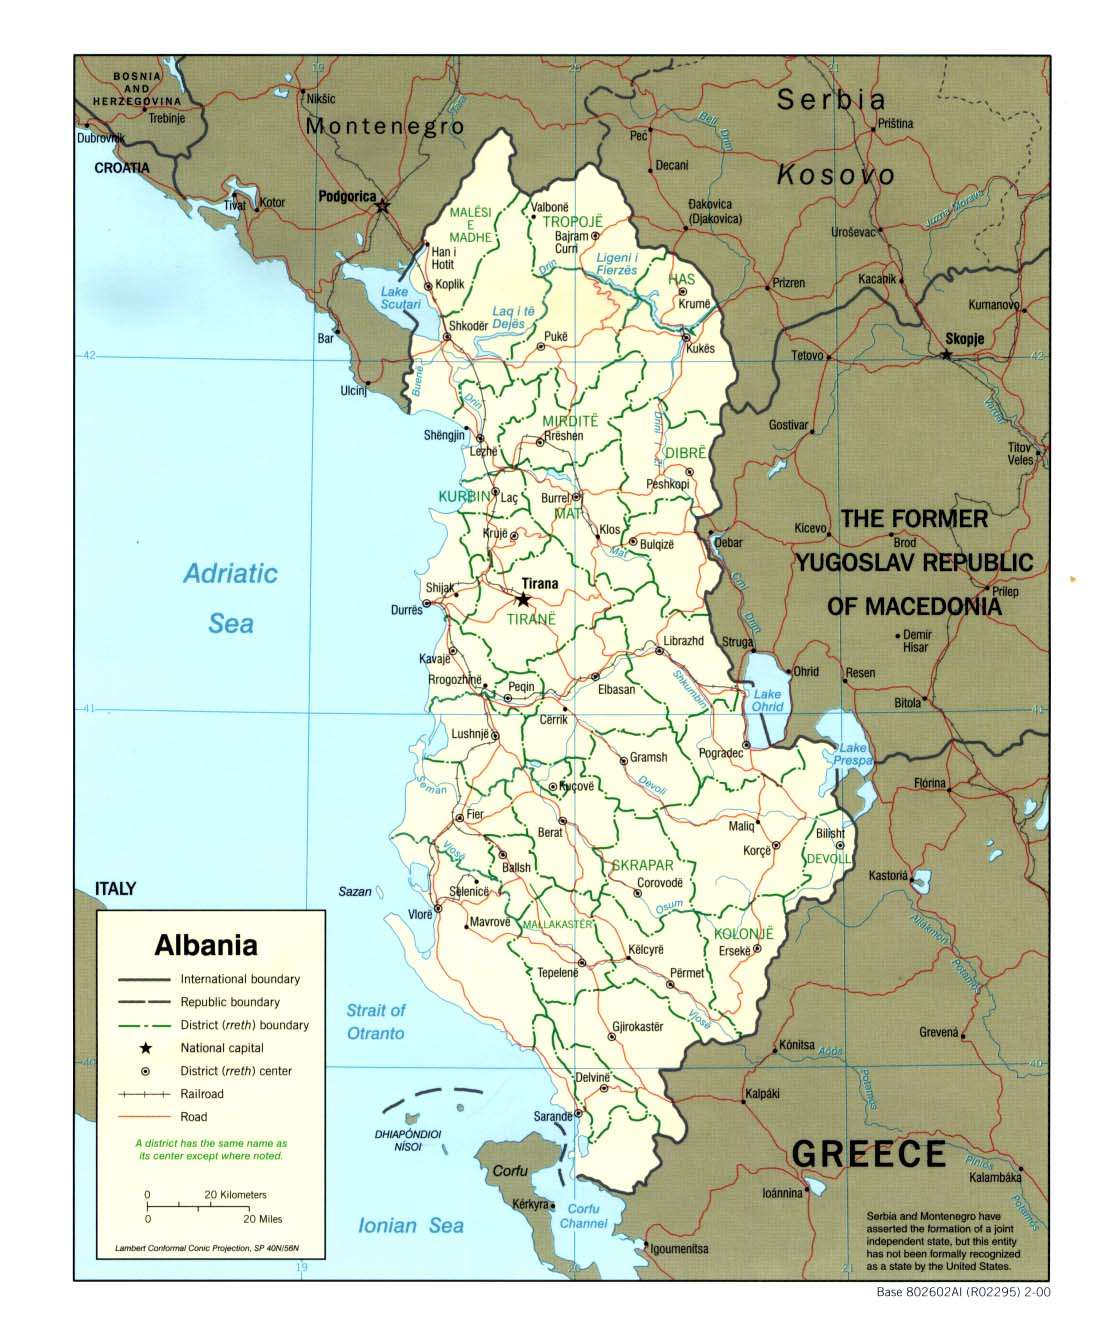 Google Maps Albania 2013 Cool Maps, - World Map Database on download business maps, topographic maps, download icons, online maps, download london tube map, download bing maps,